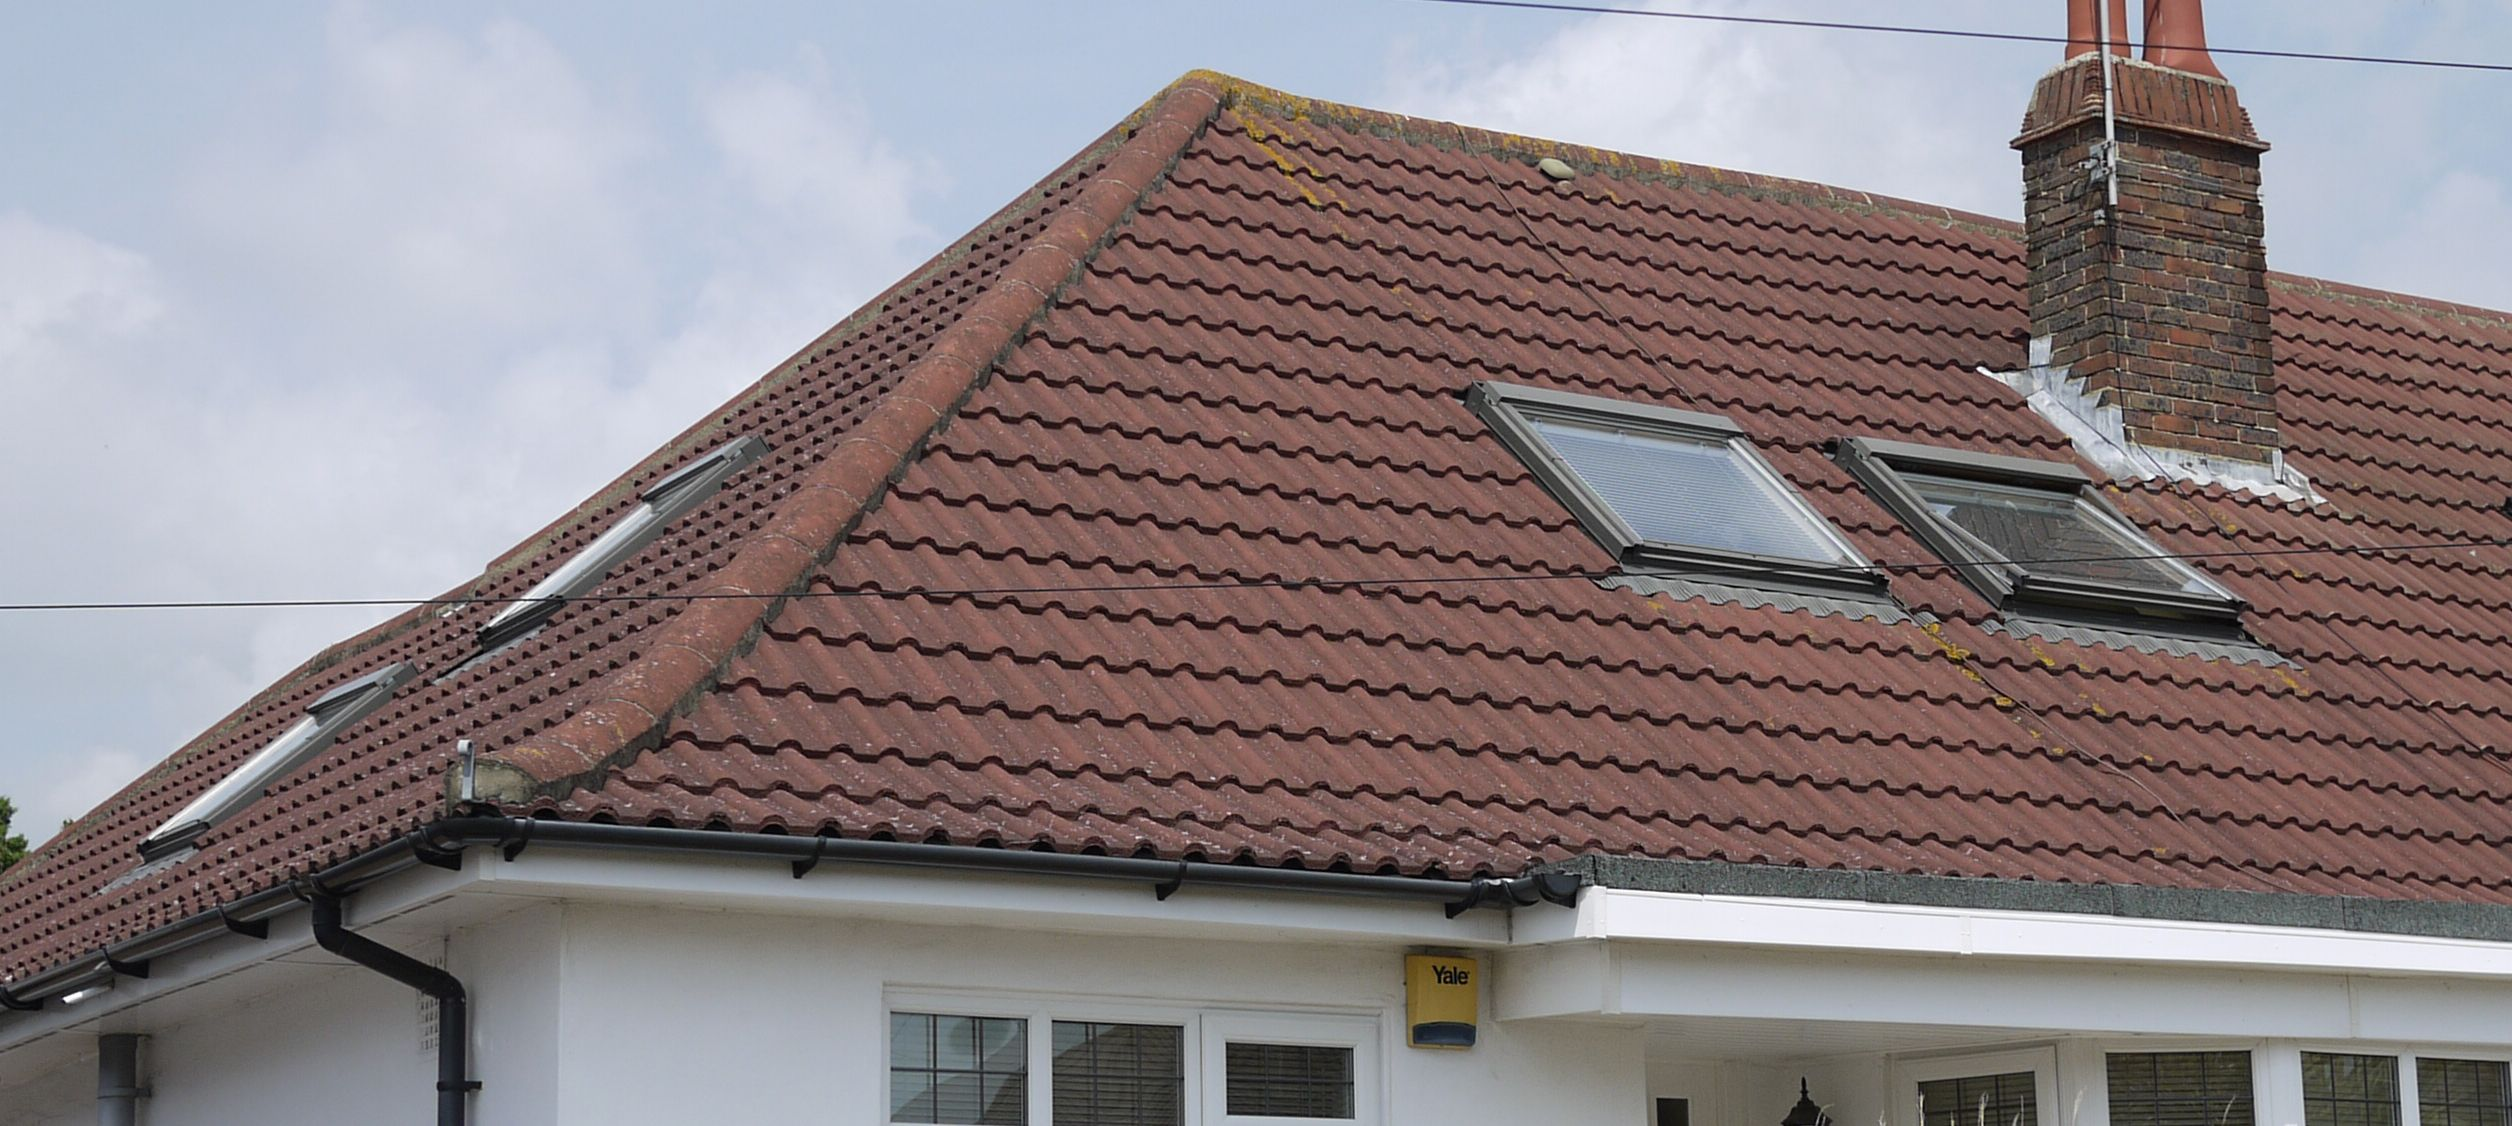 Types Of Roofs On Loft Conversions Hip Roof Loft Conversion Design Glass Roof Extension